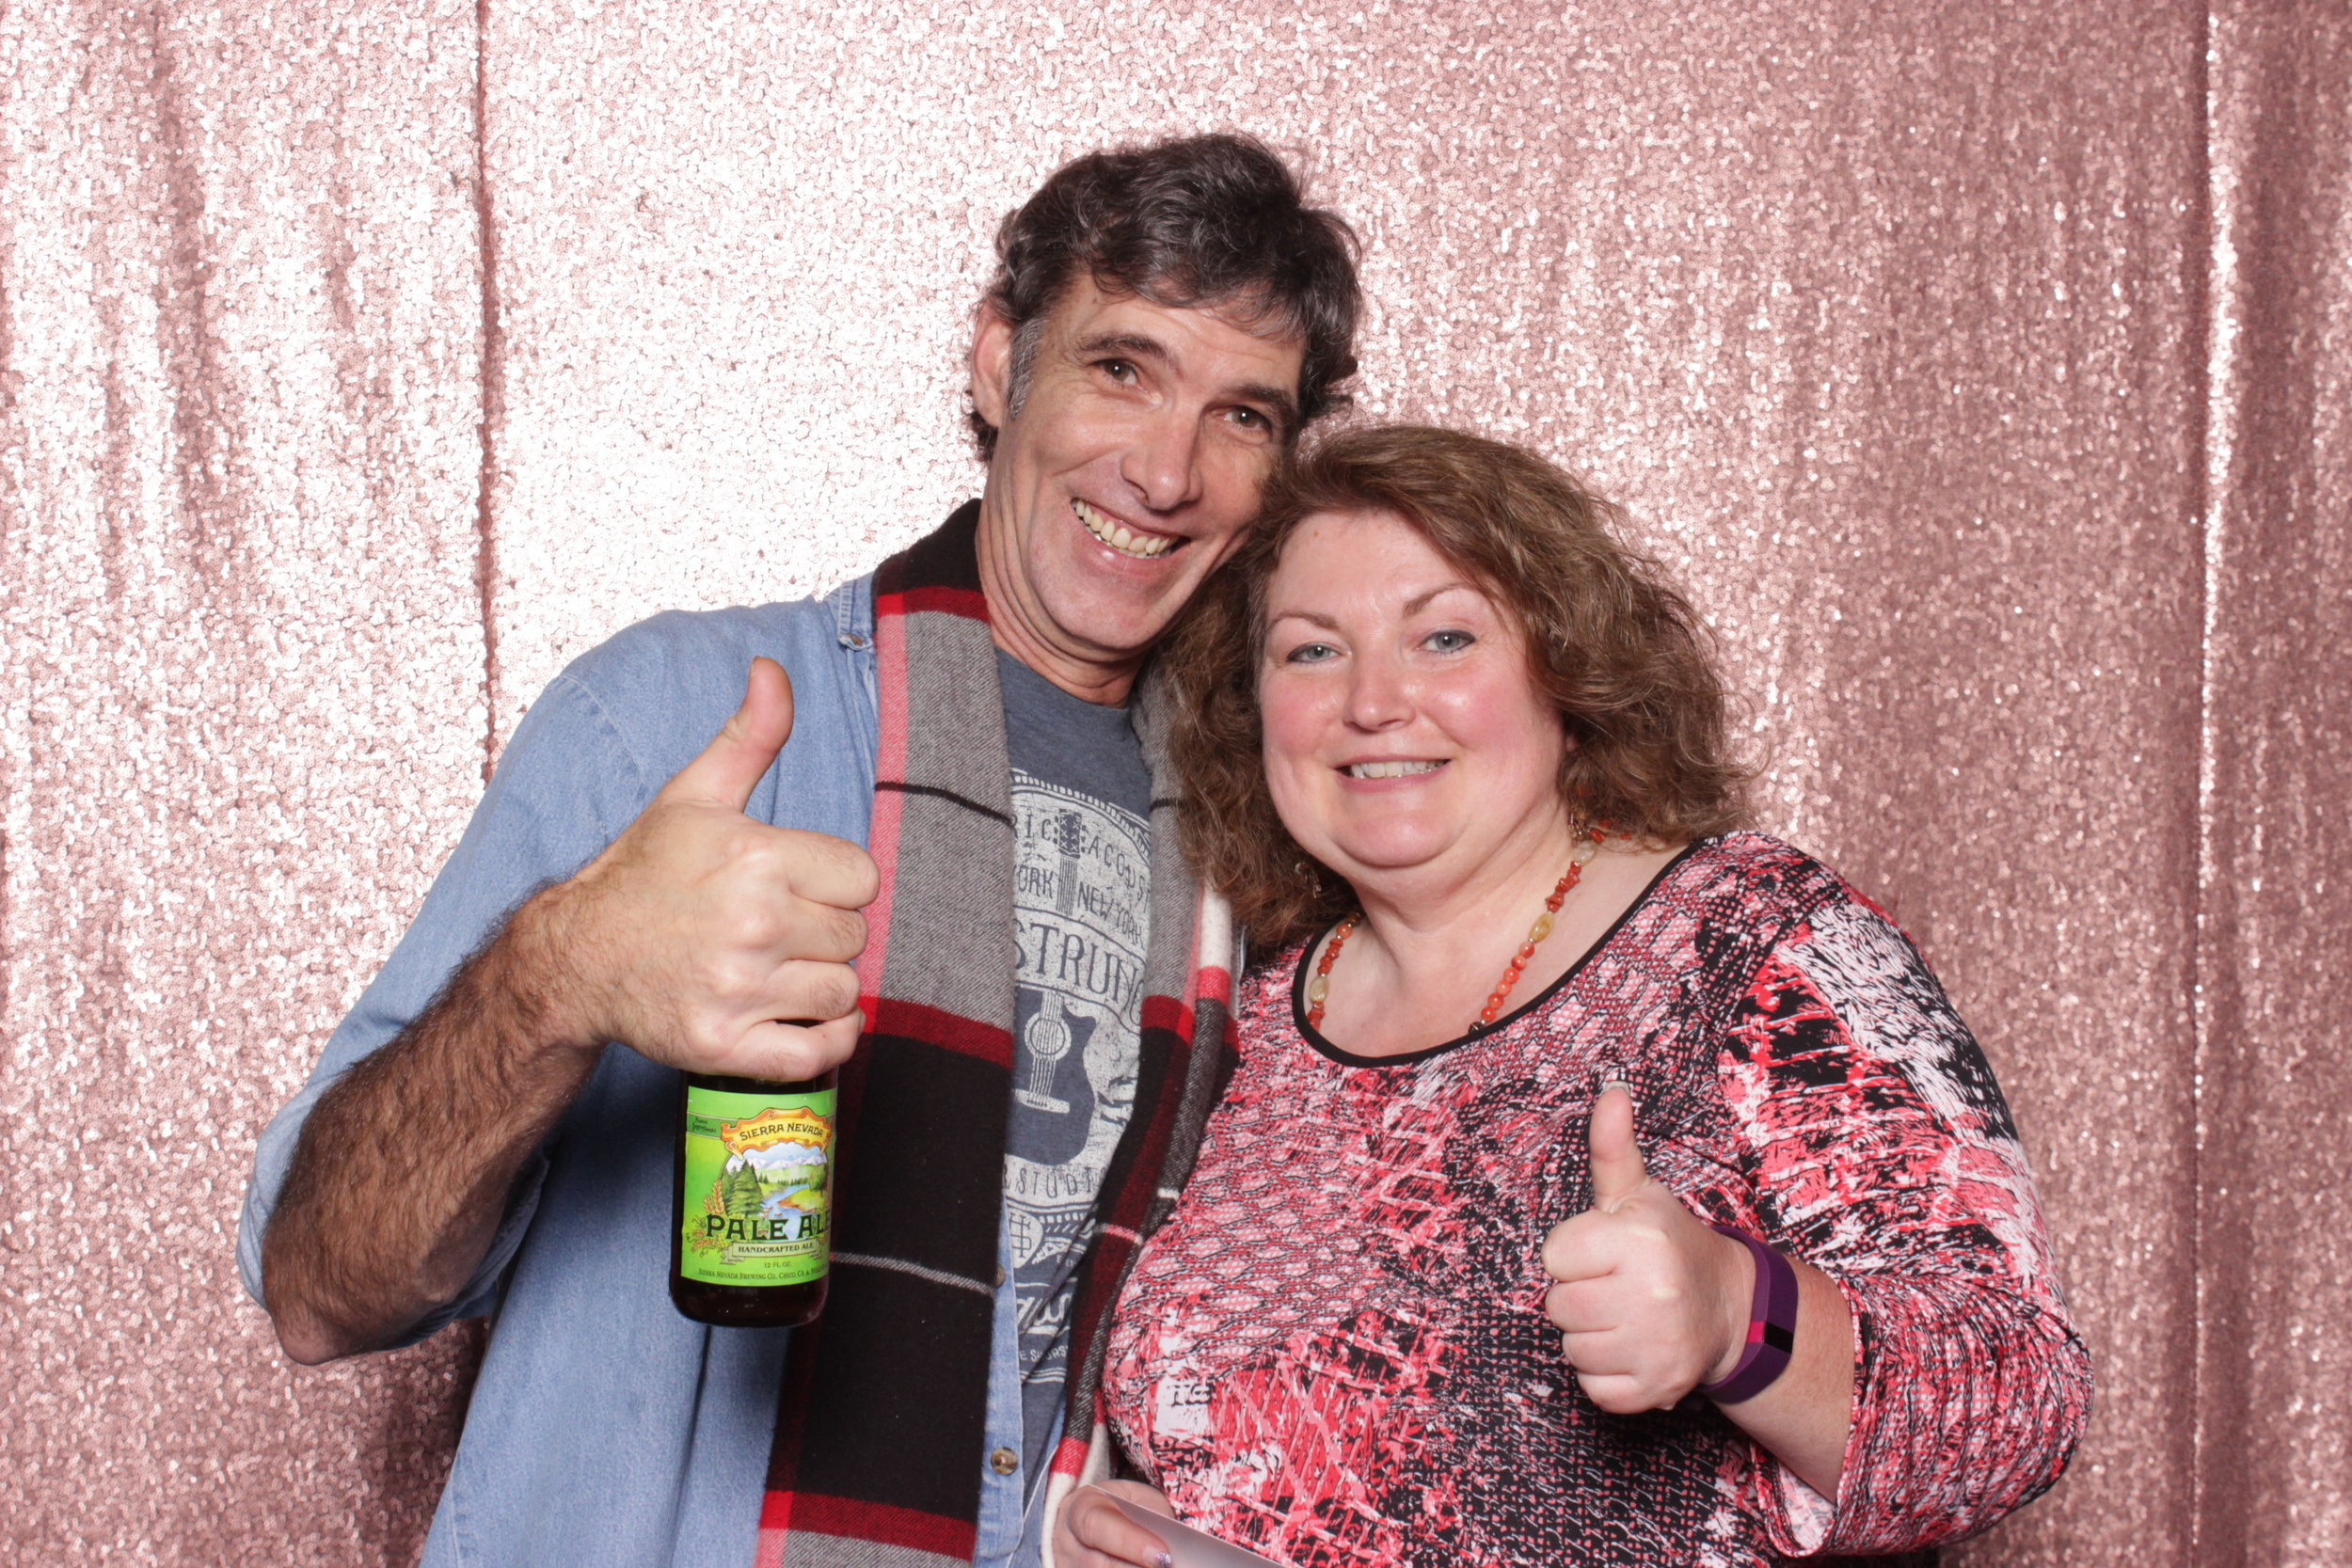 Chico-photo-booth-rental-fast-costumes-party-event-quality-hd-